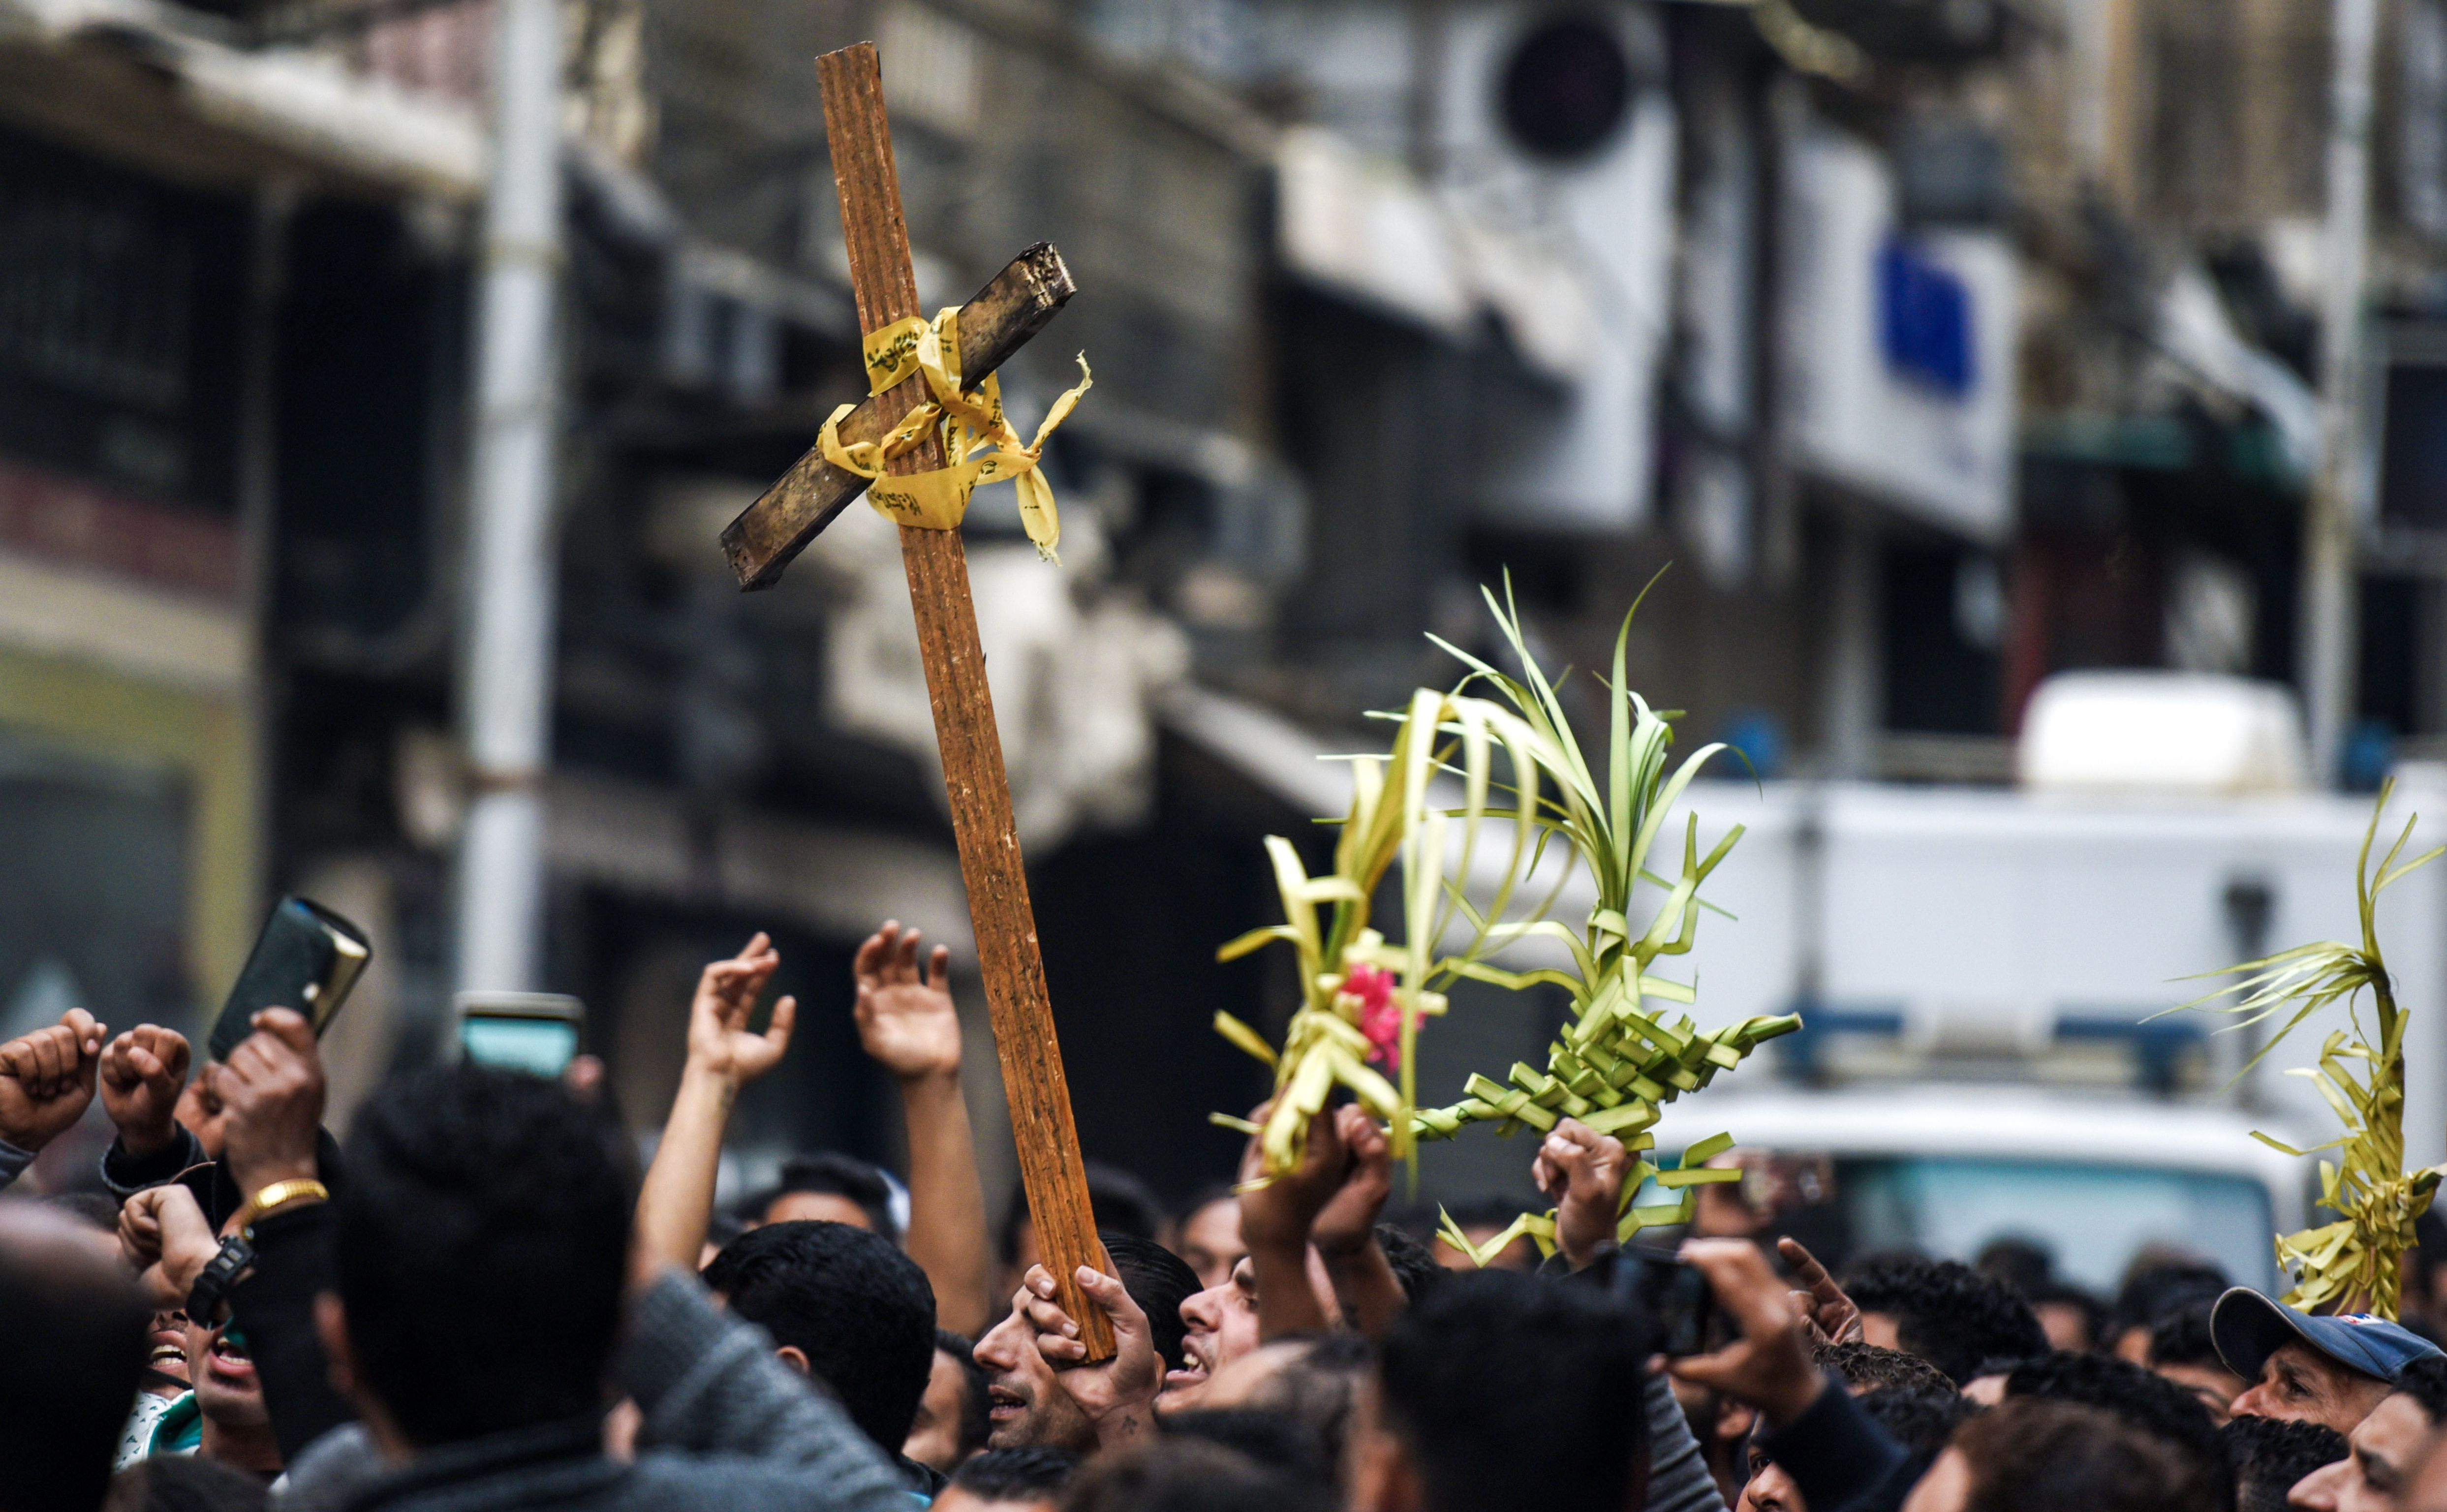 Egyptians raise a wooden cross and palm leaves originally intended for Palm Sunday celebrations, as they gather outside the Coptic Orthodox Patriarchate in Alexandria after a bomb blast struck outside as worshippers attended Palm Sunday mass on April 9, 2017. (MOHAMED EL-SHAHED/AFP via Getty Images)